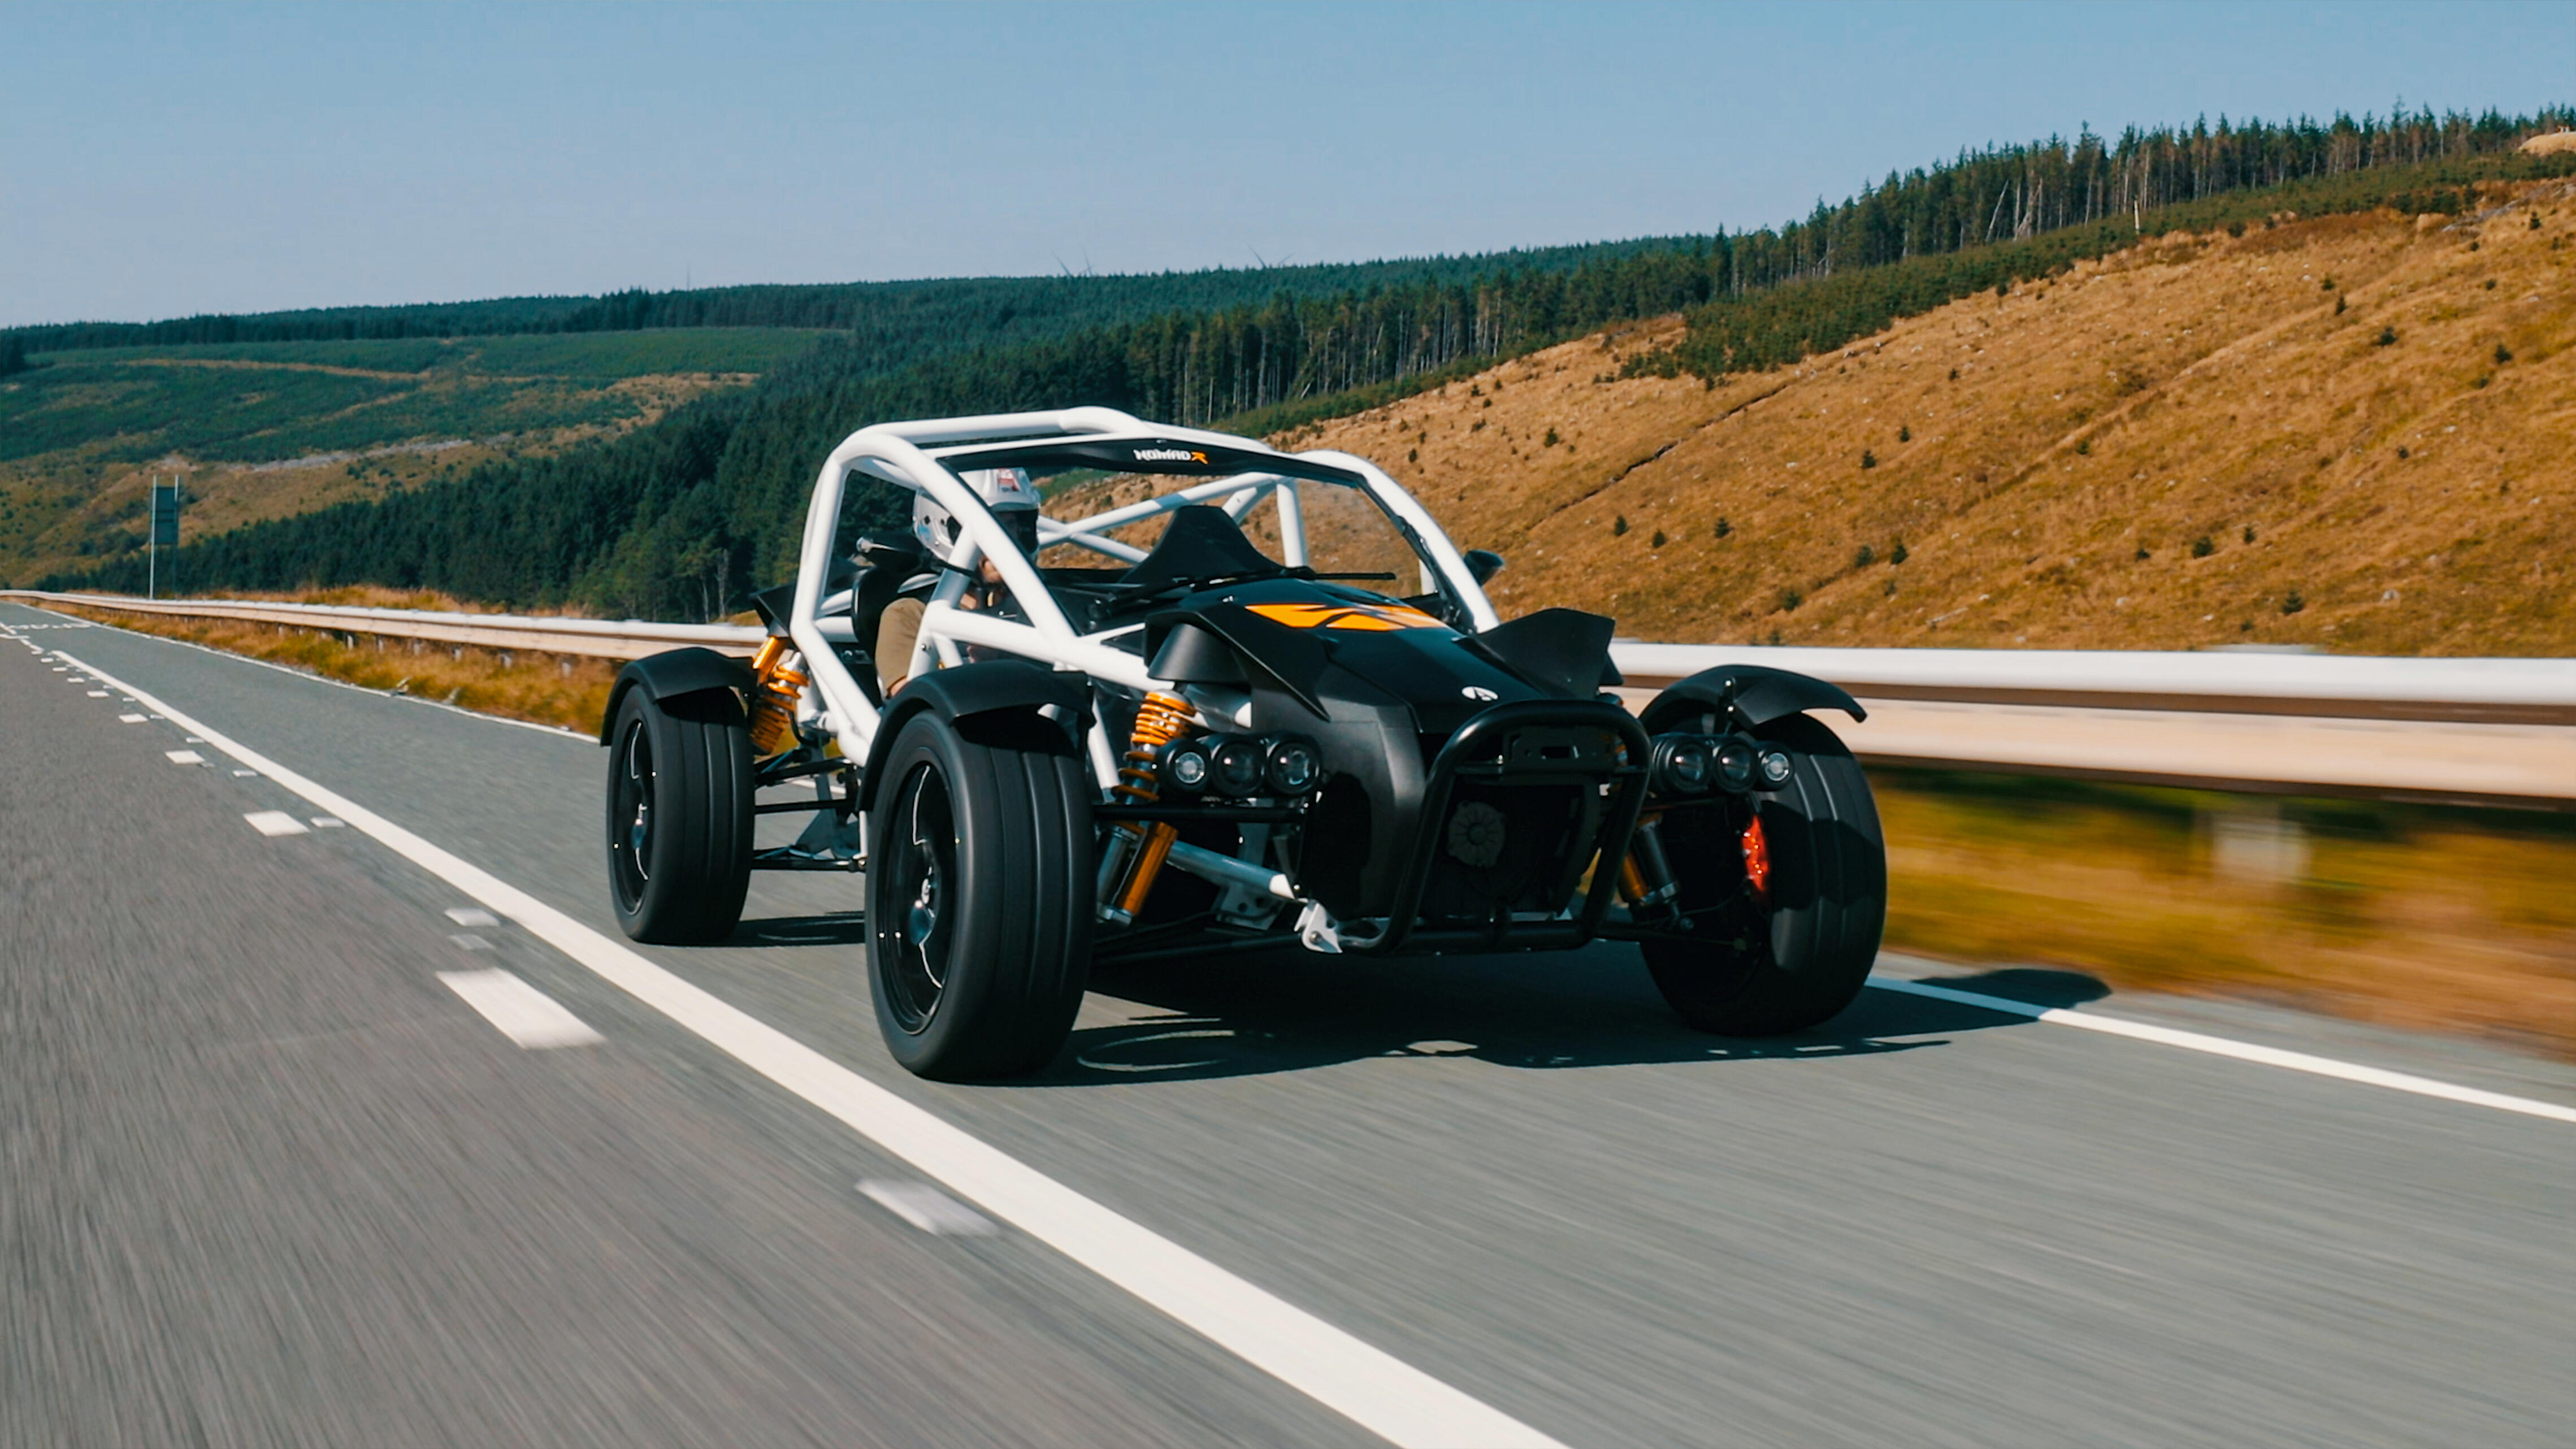 Video: The Ariel Nomad R will keep you up at night